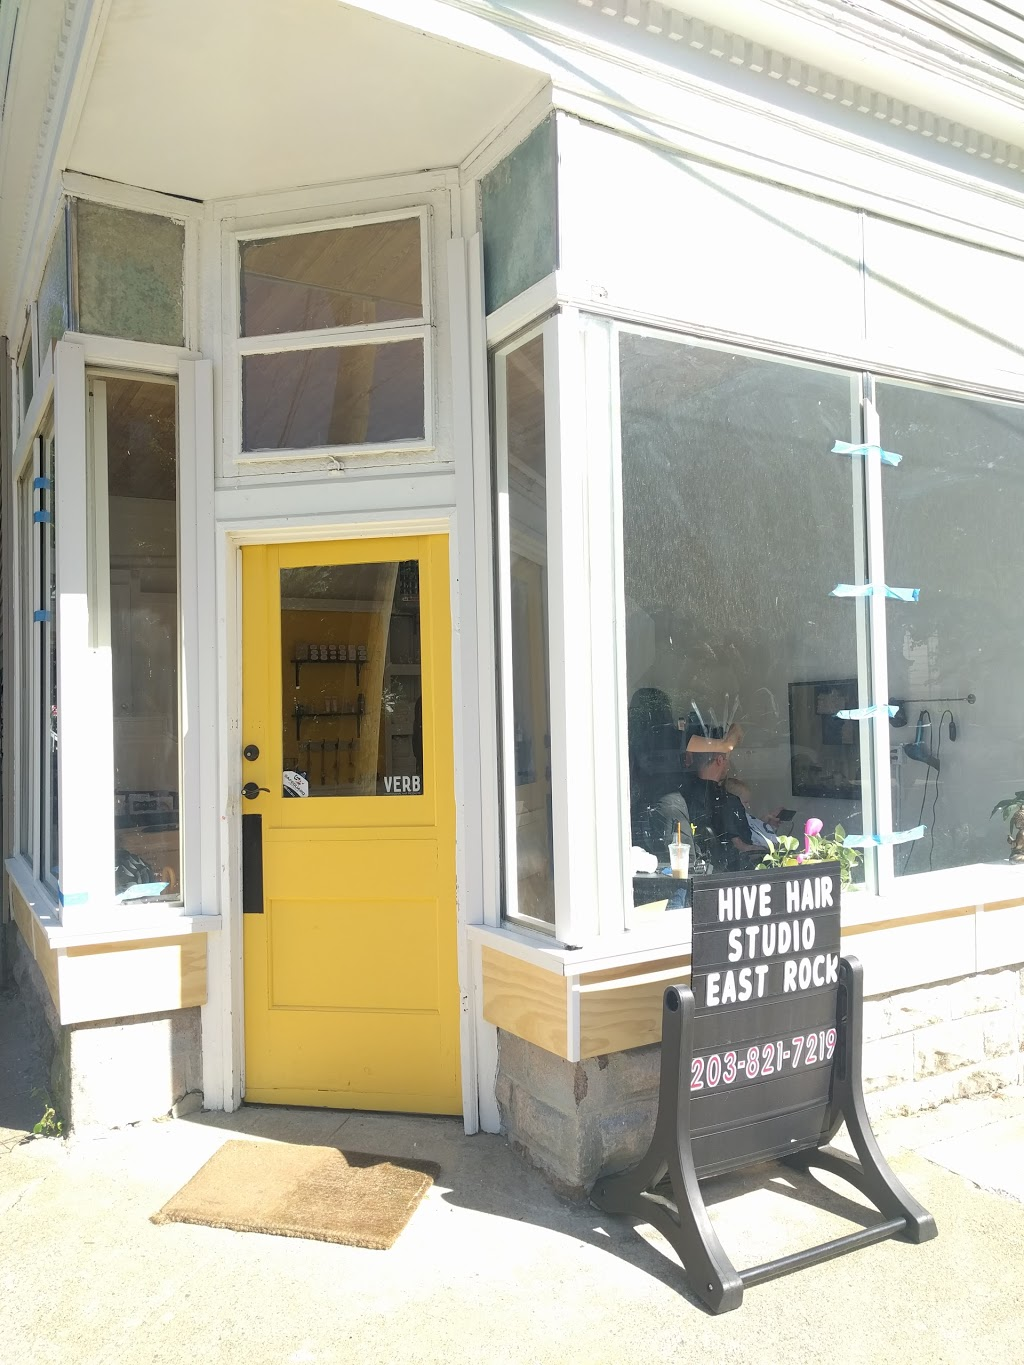 The Hive Hair Studio - hair care    Photo 1 of 5   Address: 153 Nicoll St, New Haven, CT 06511, USA   Phone: (203) 691-7334